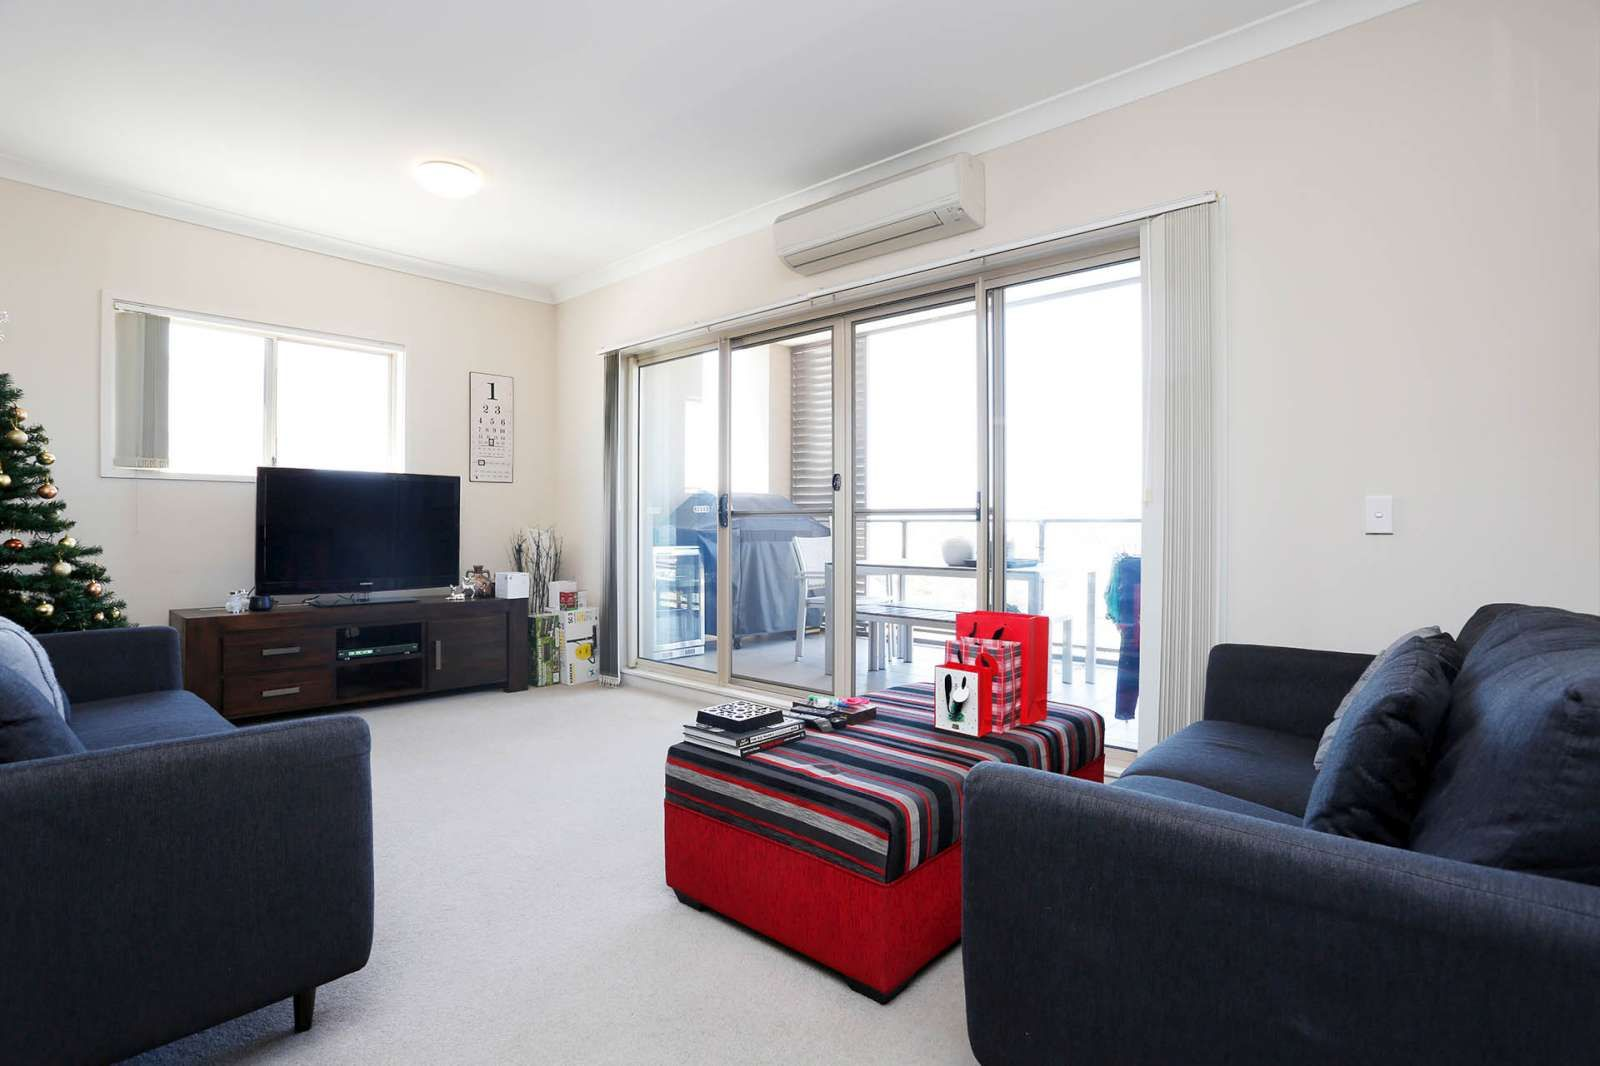 26/17 Warby Street, Campbelltown NSW 2560, Image 2